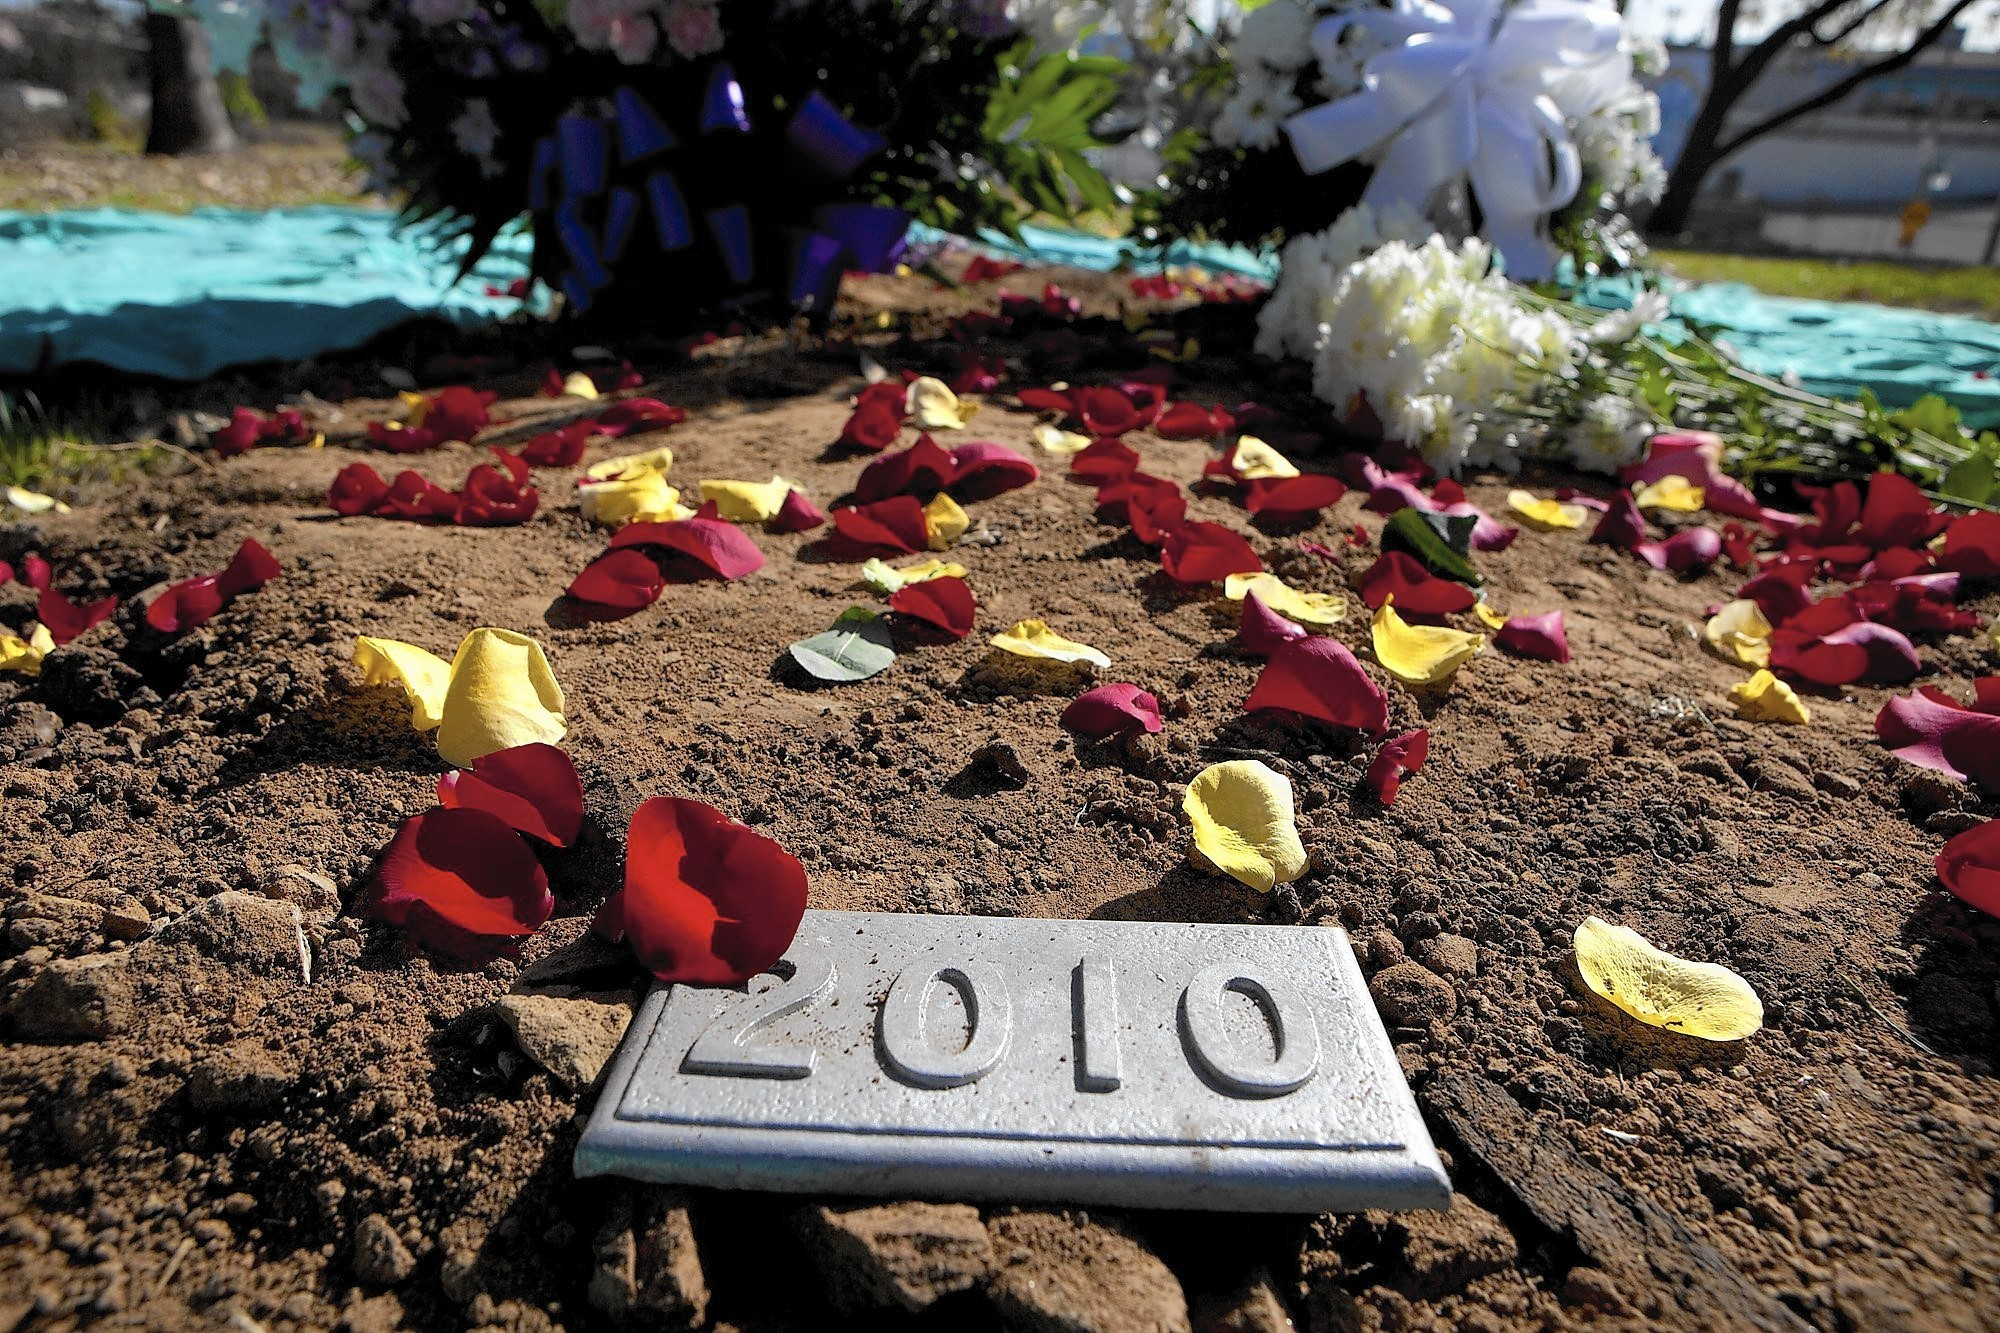 Survivors find peace as they claim remains once \'unwanted\' in L.A. ...